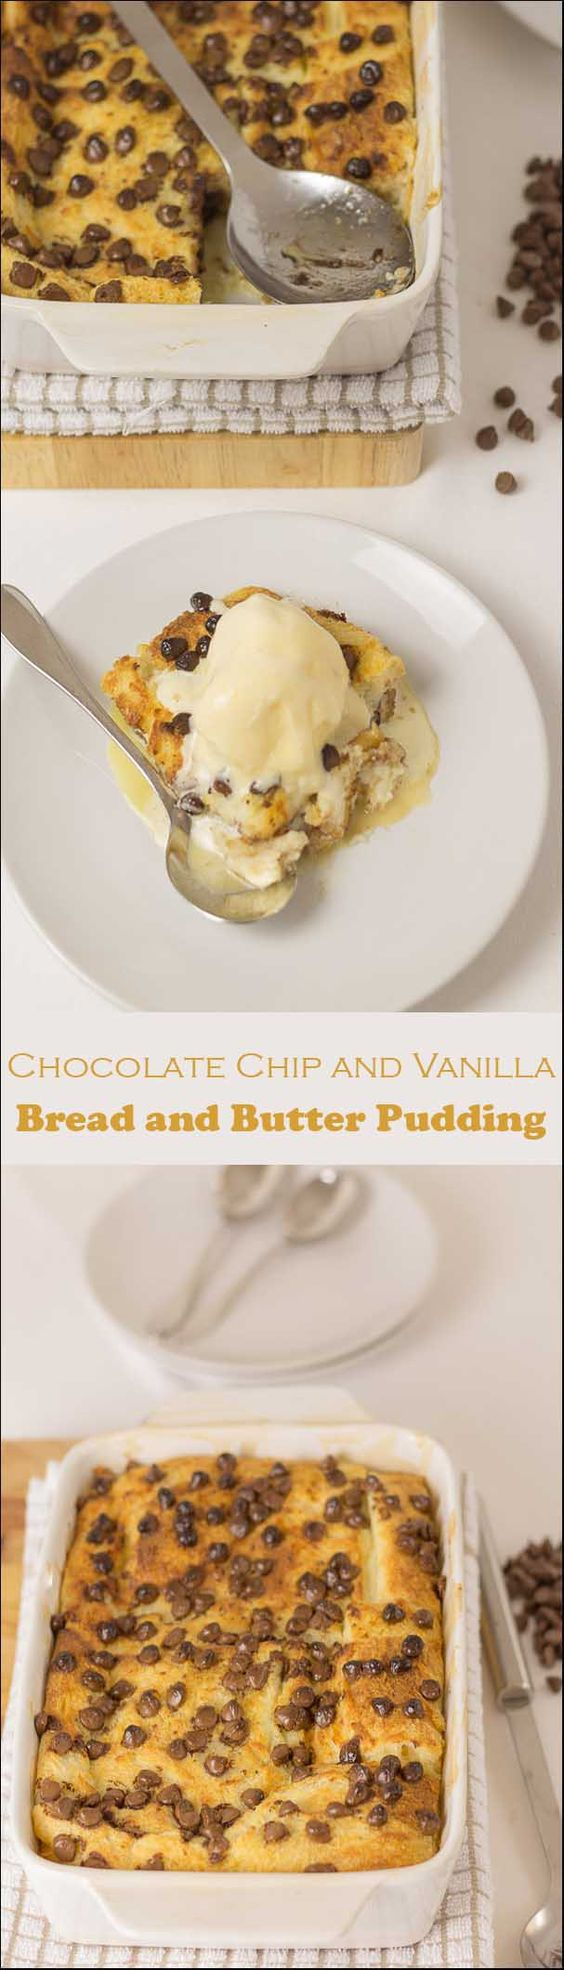 The traditional bread and butter pudding is brought up to date in this wickedly indulgent variation!.